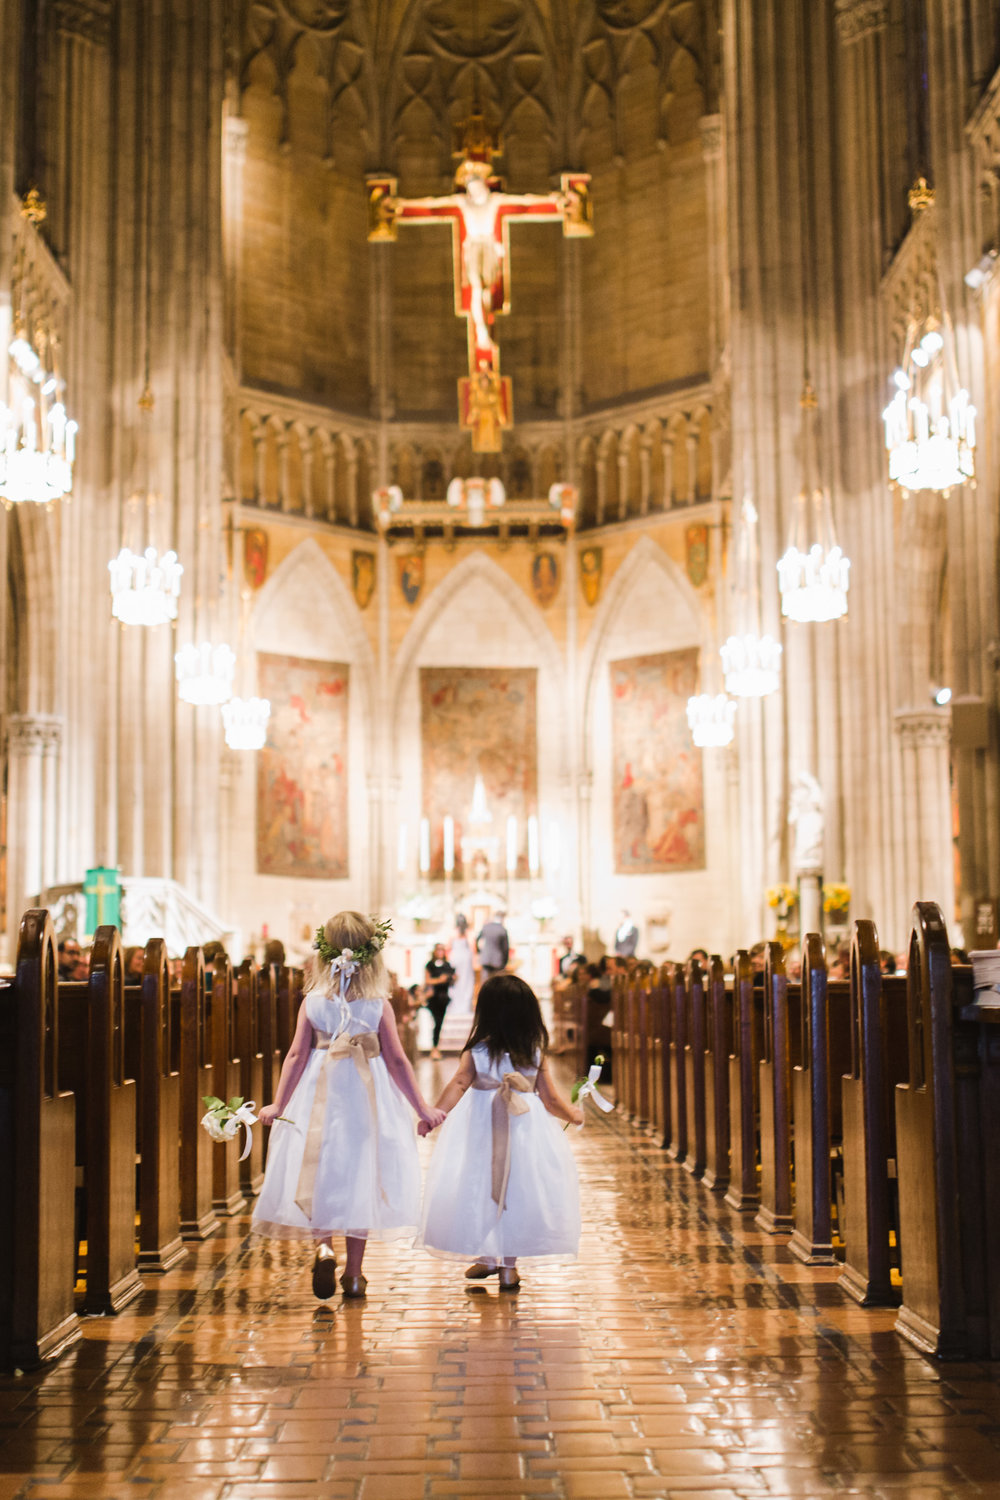 @Amy Sims Photography | New York Wedding Photography | Flowergirls hold hands down aisle of church